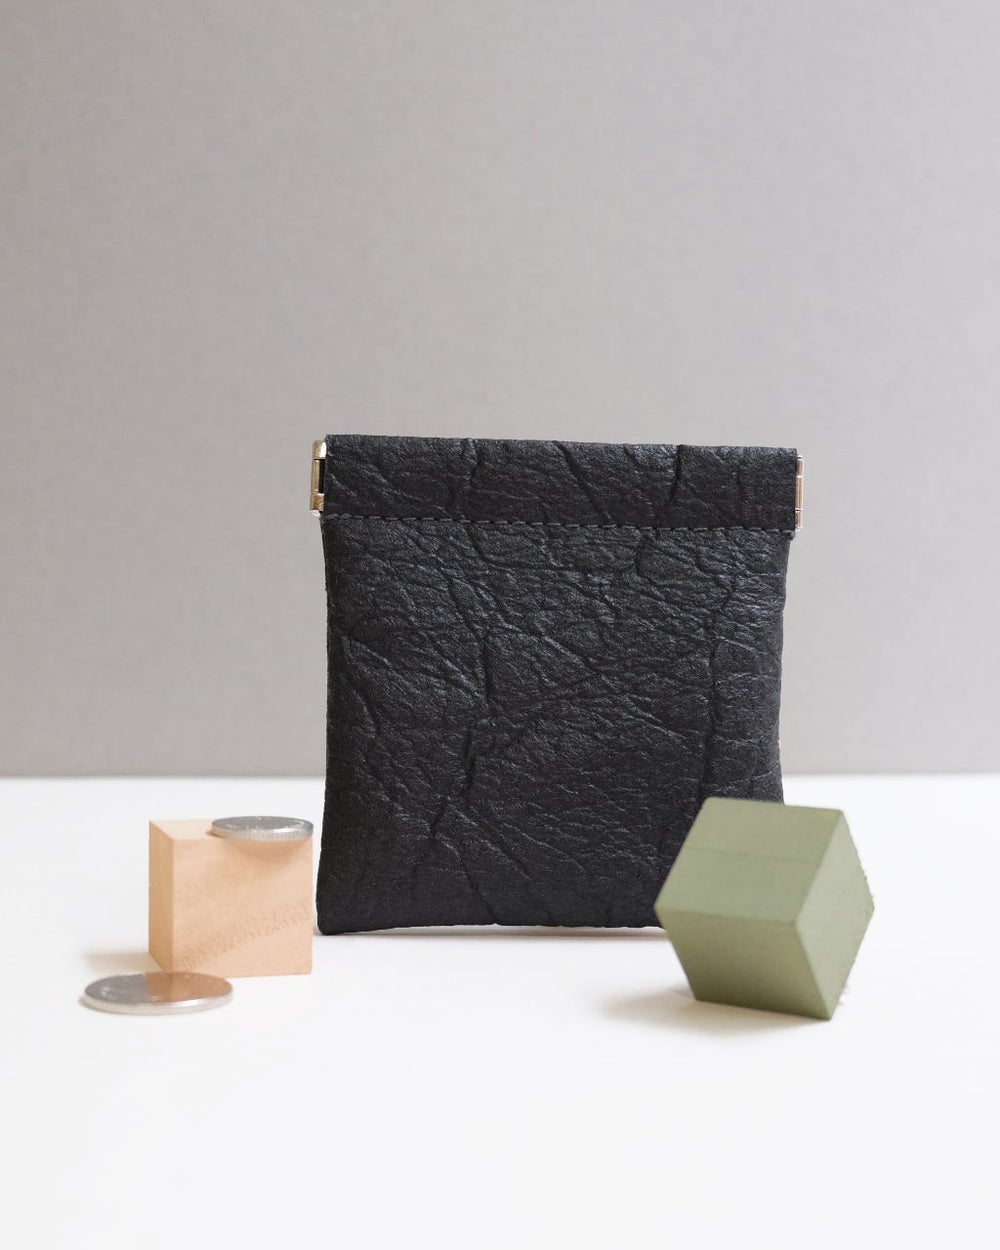 Image of Small Pouch Black